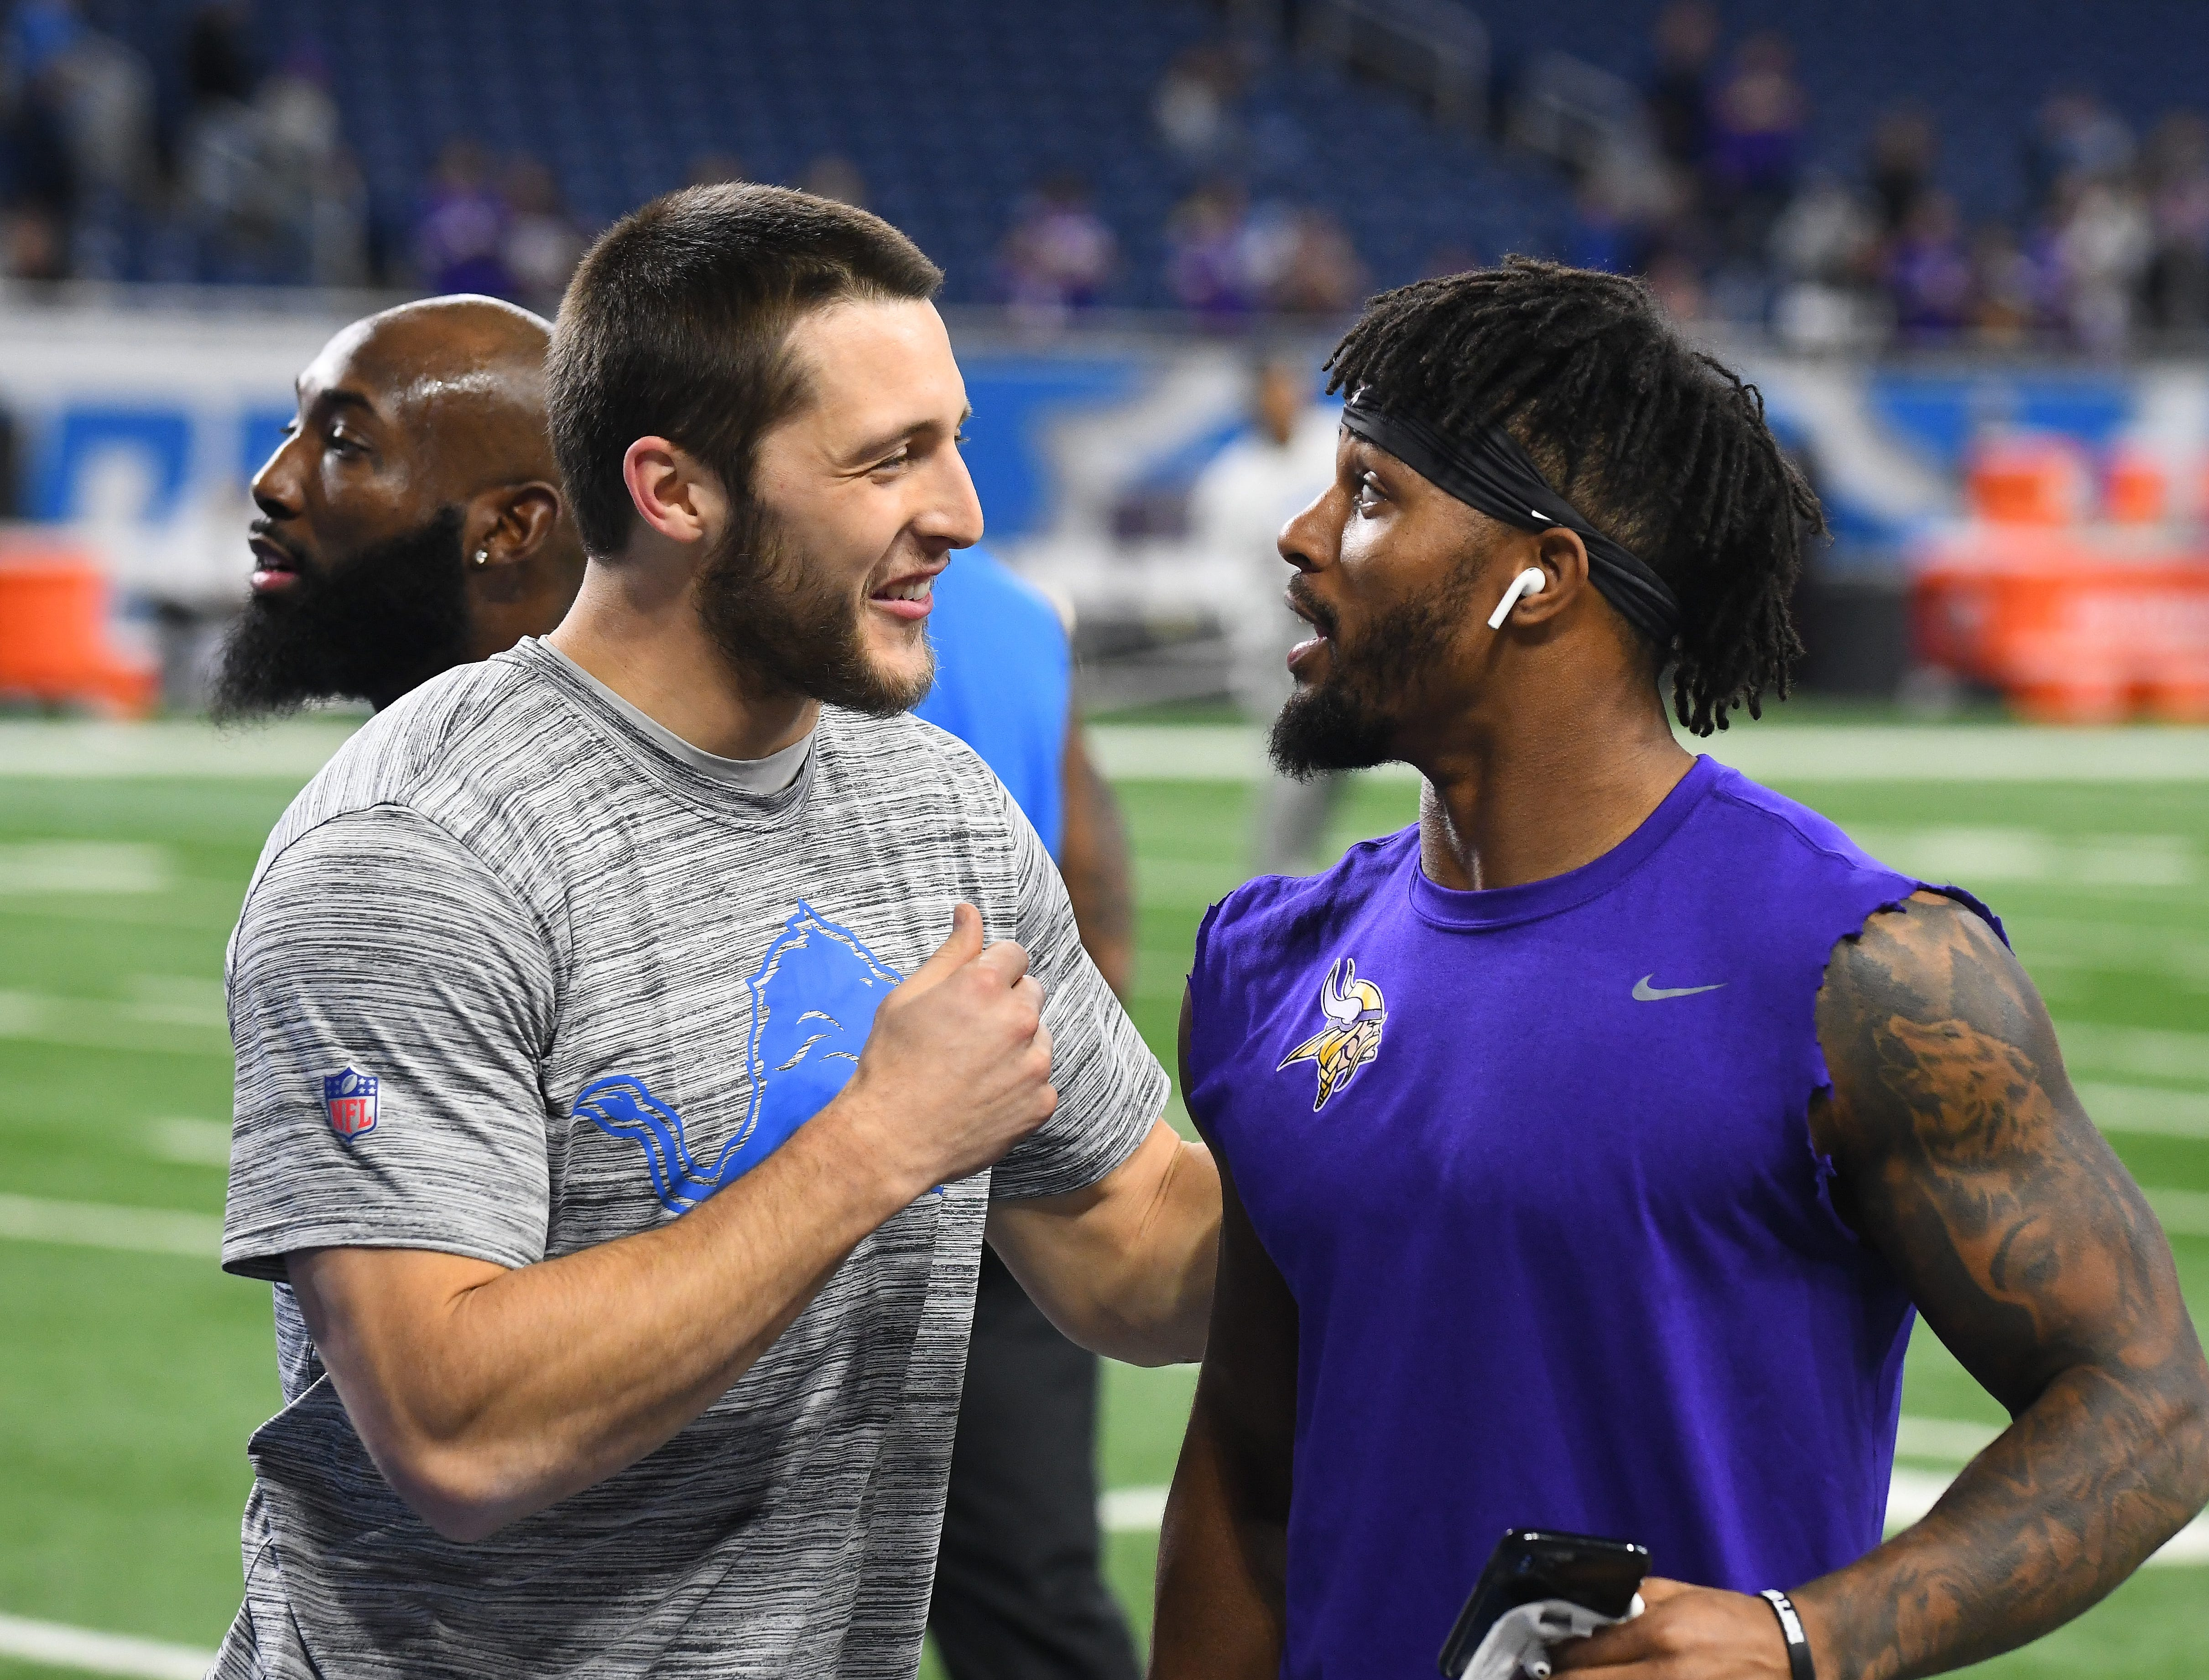 Lions running back Zach Zenner greets former Lions running back, now with the Vikings, Ameer Abdullah on the field before Detroit takes on Minnesota at Ford Field in Detroit, Michigan on December 23, 2018.